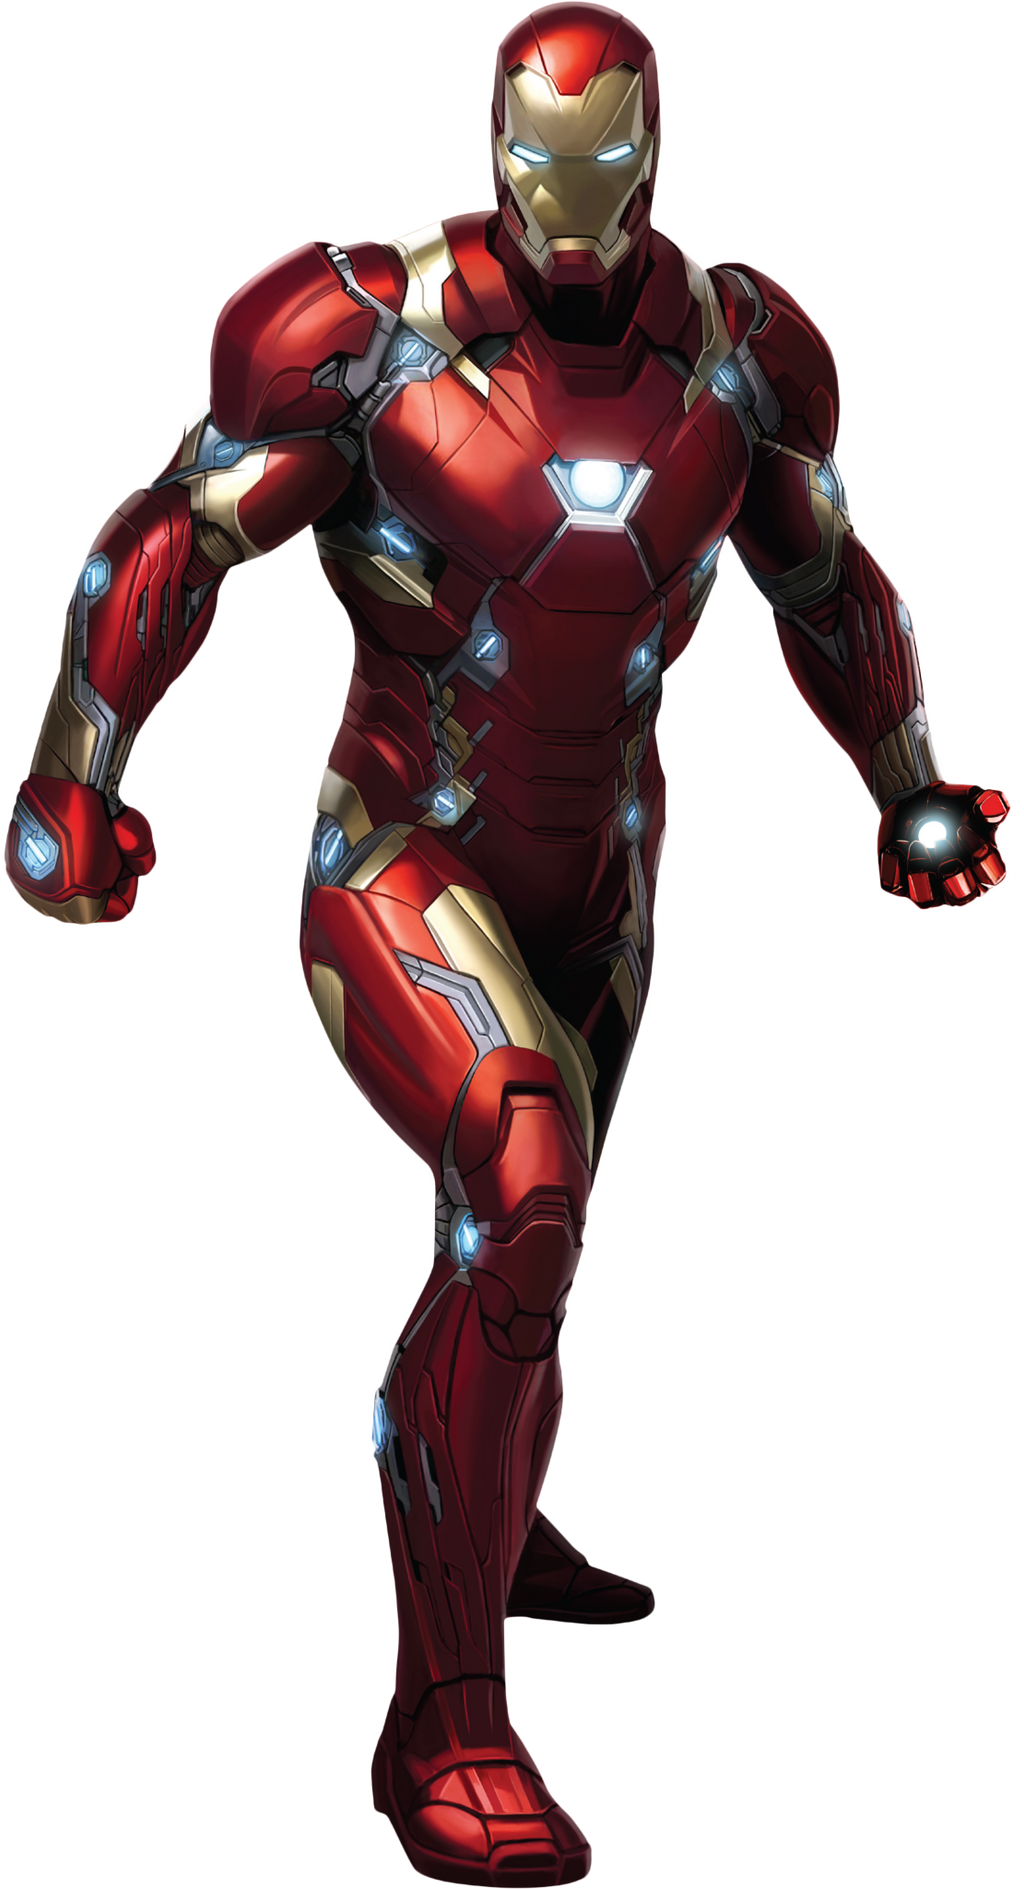 captain_america__civil_war___iron_man_02_png_by_imangelpeabody-d9xd4g3